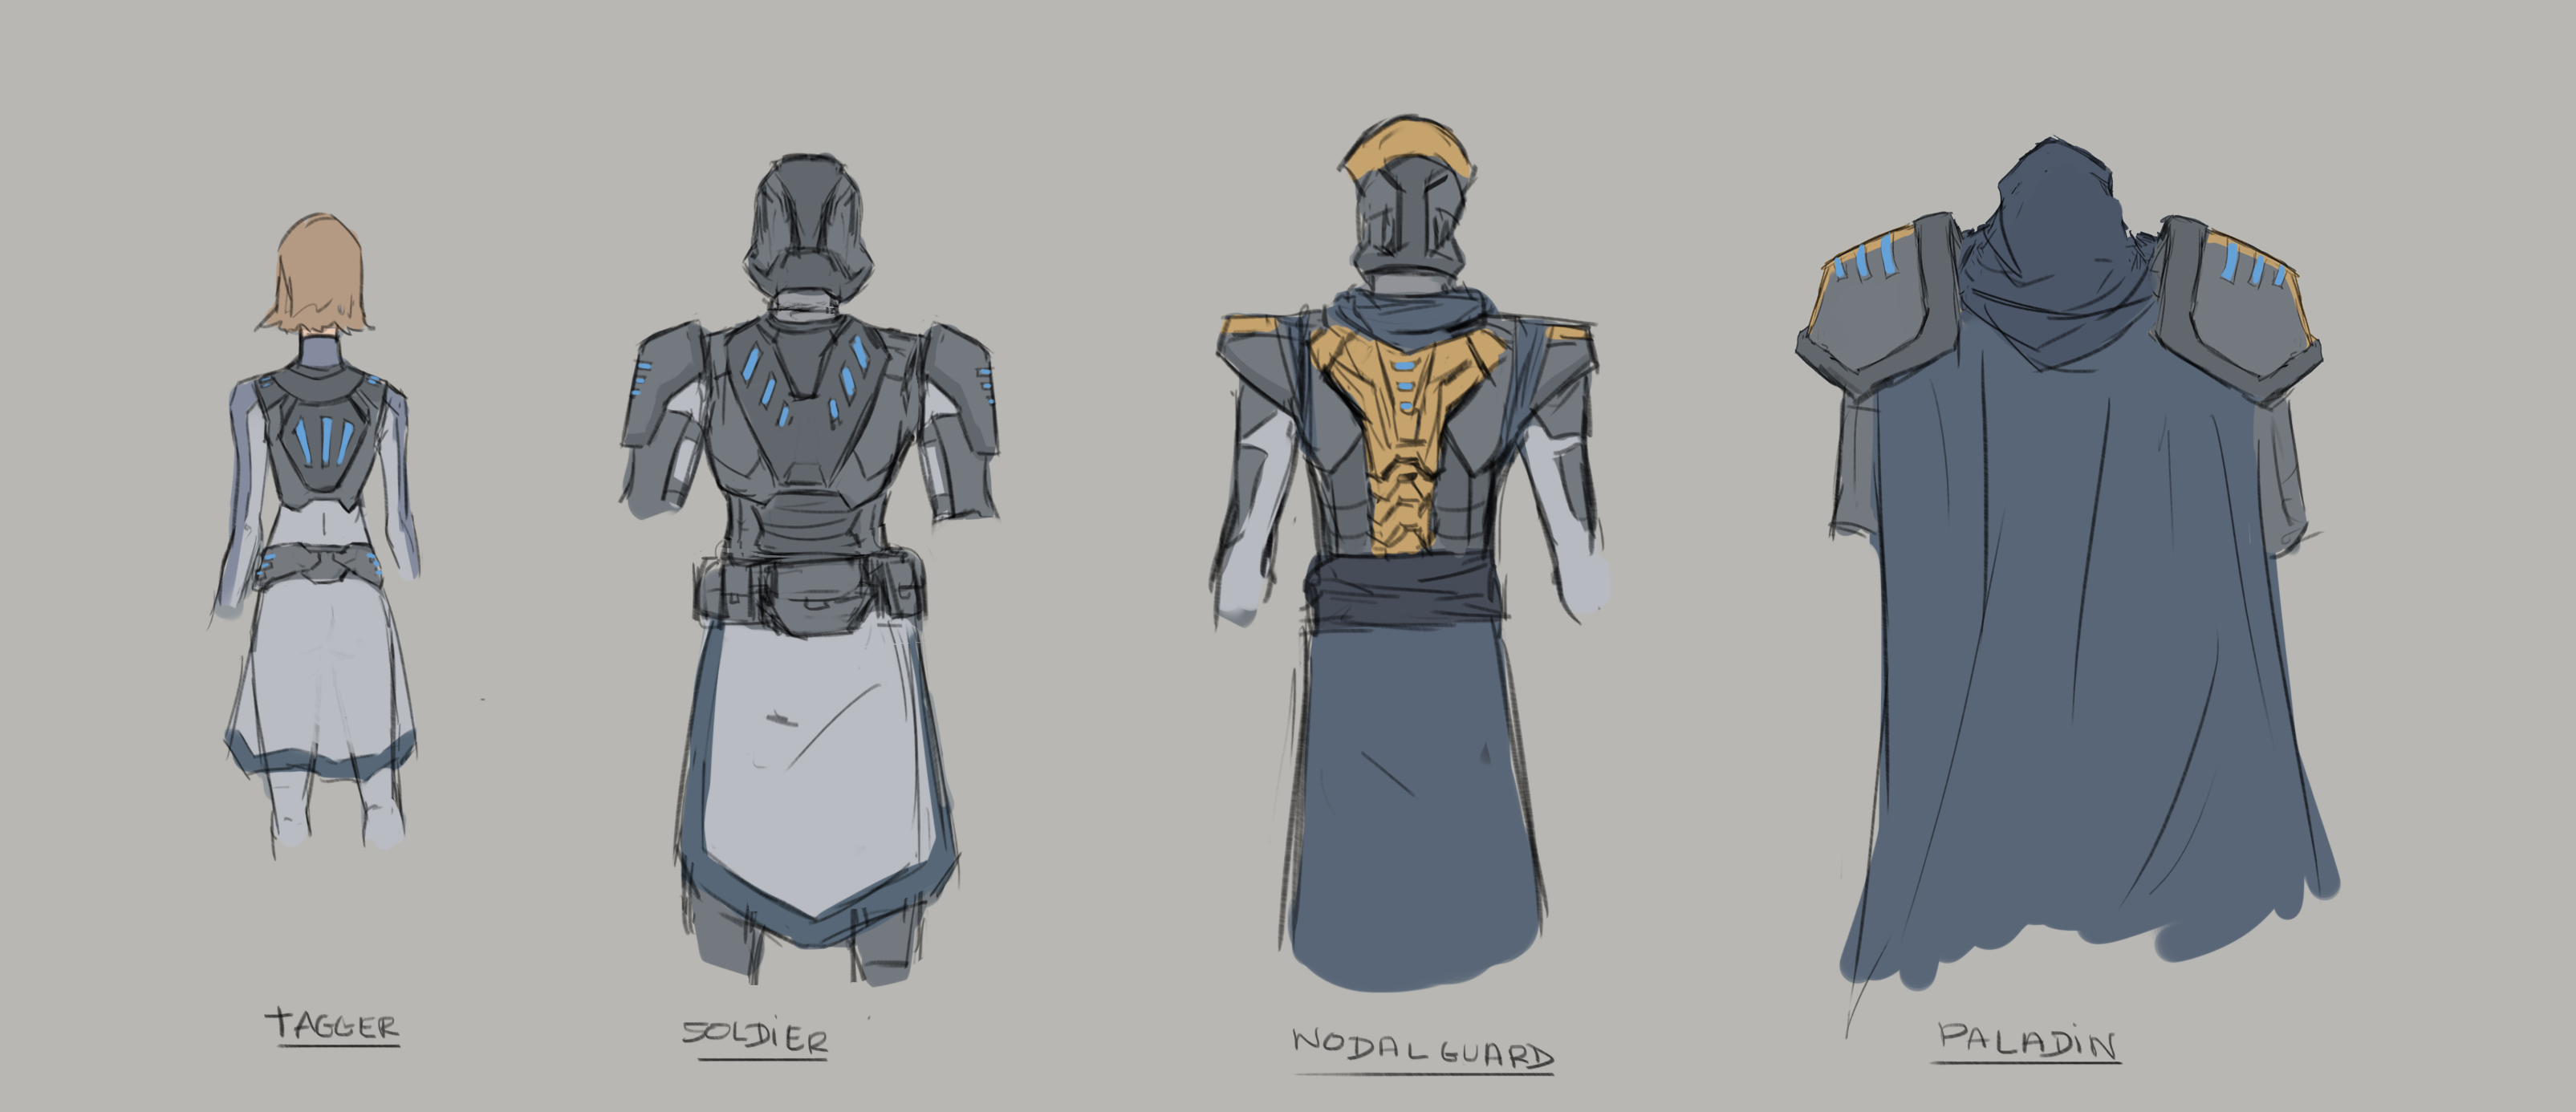 TAGG Character Design